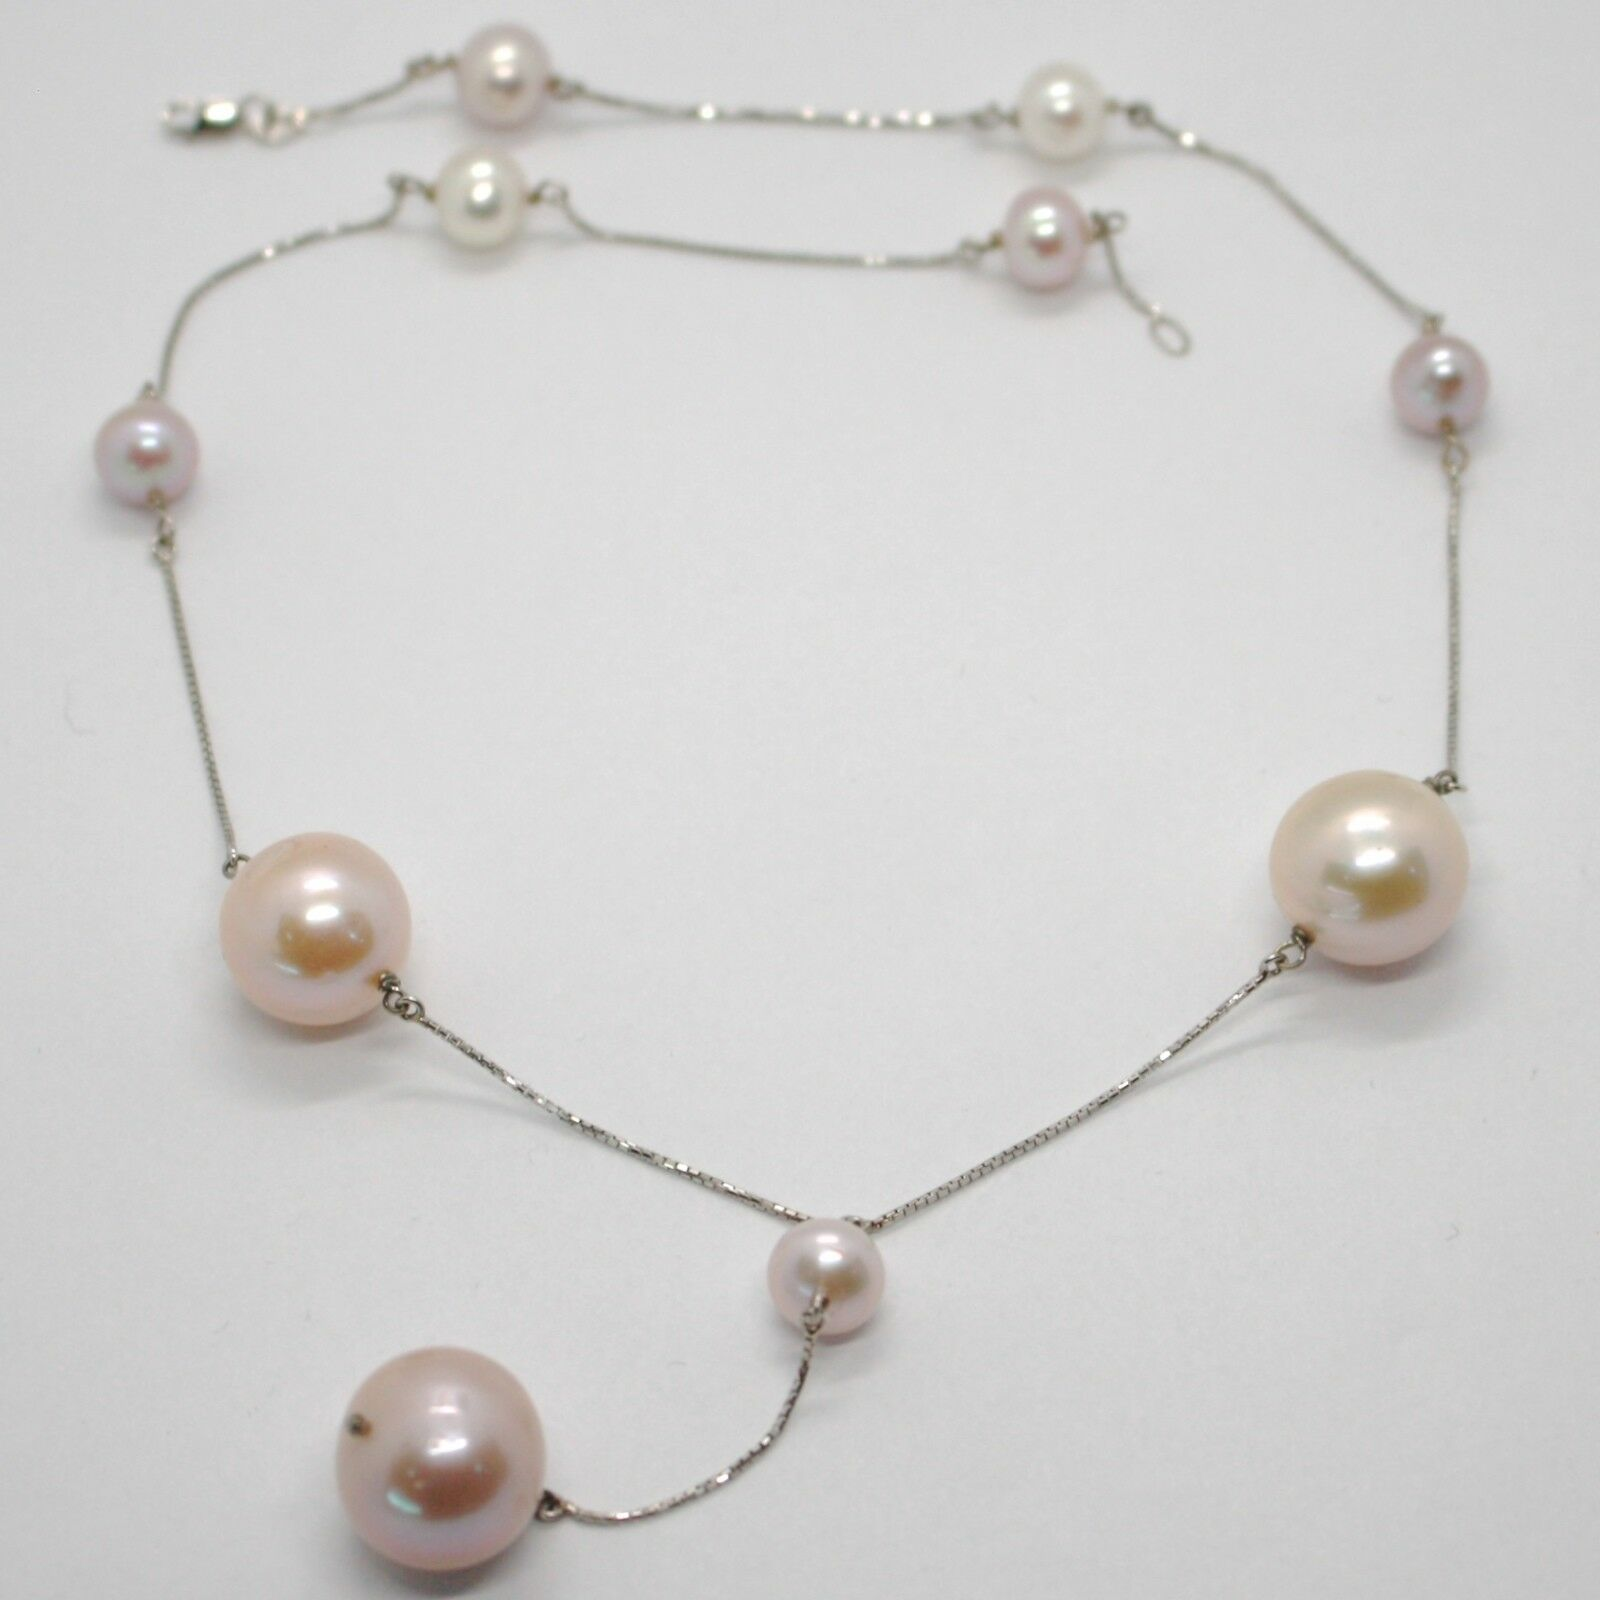 18K WHITE GOLD LARIAT NECKLACE, VENETIAN CHAIN WHITE & PURPLE BIG PEARLS 16 MM